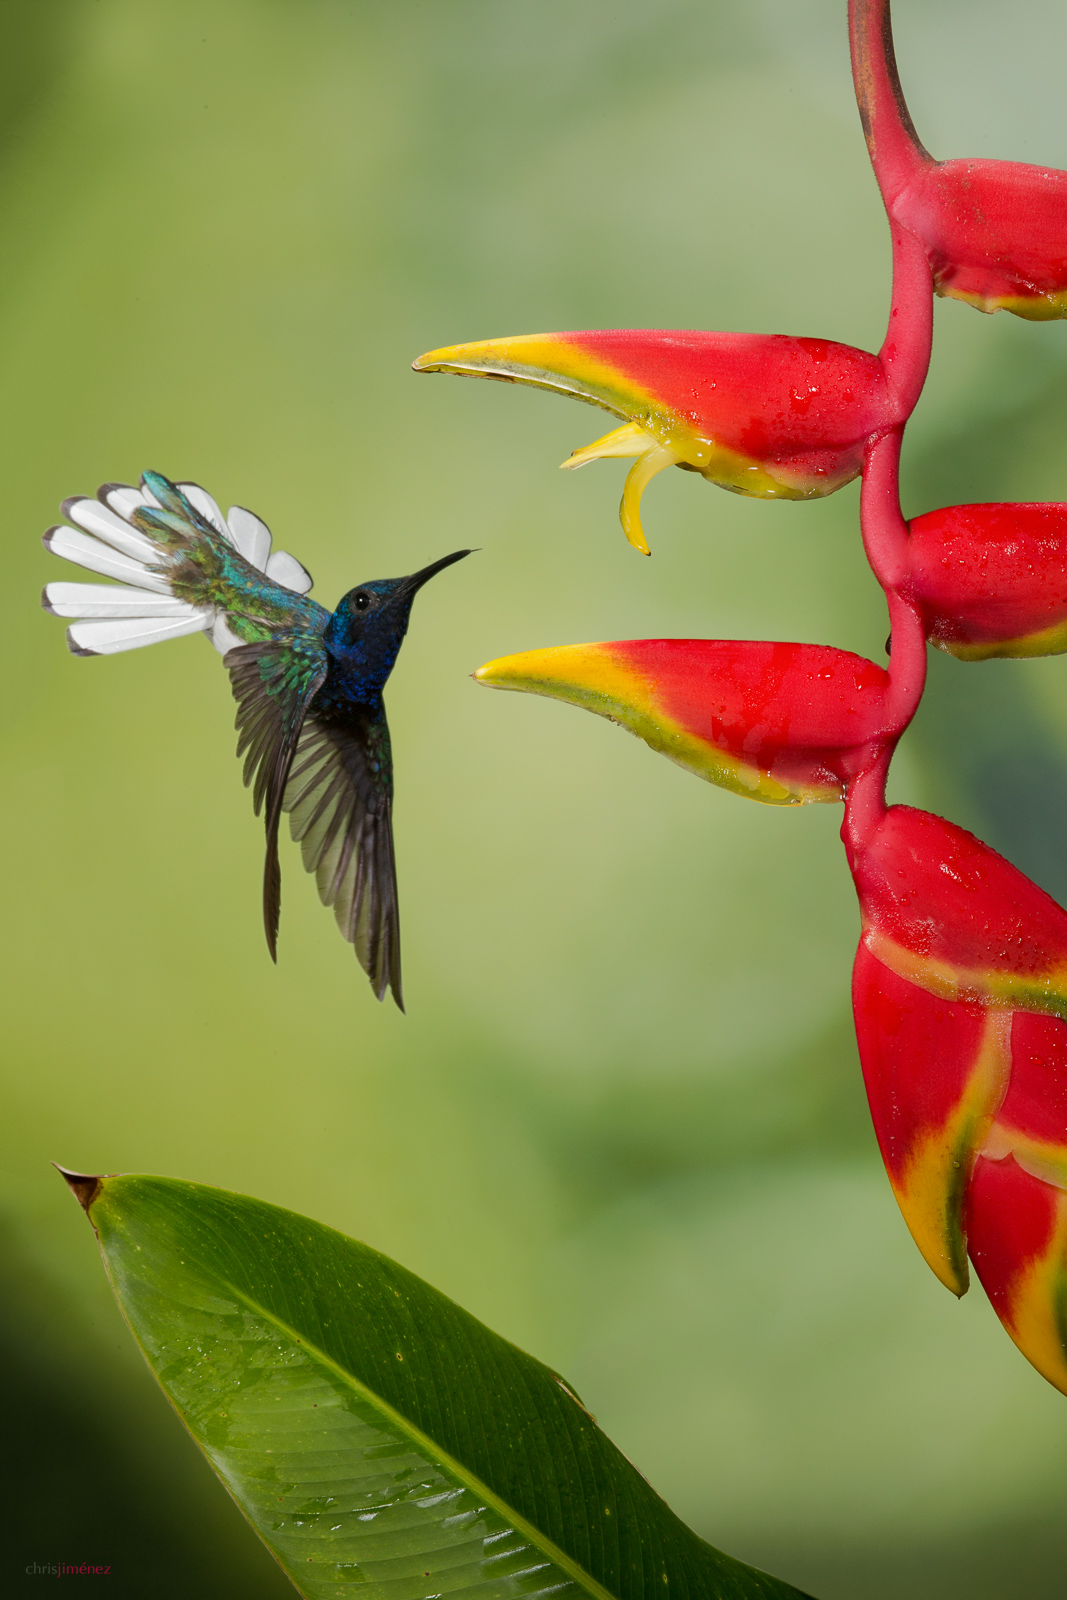 White-necked Jacobin (Florisuga mellivora) feeding from heliconia flower at Sarapiqui, Costa Rica.